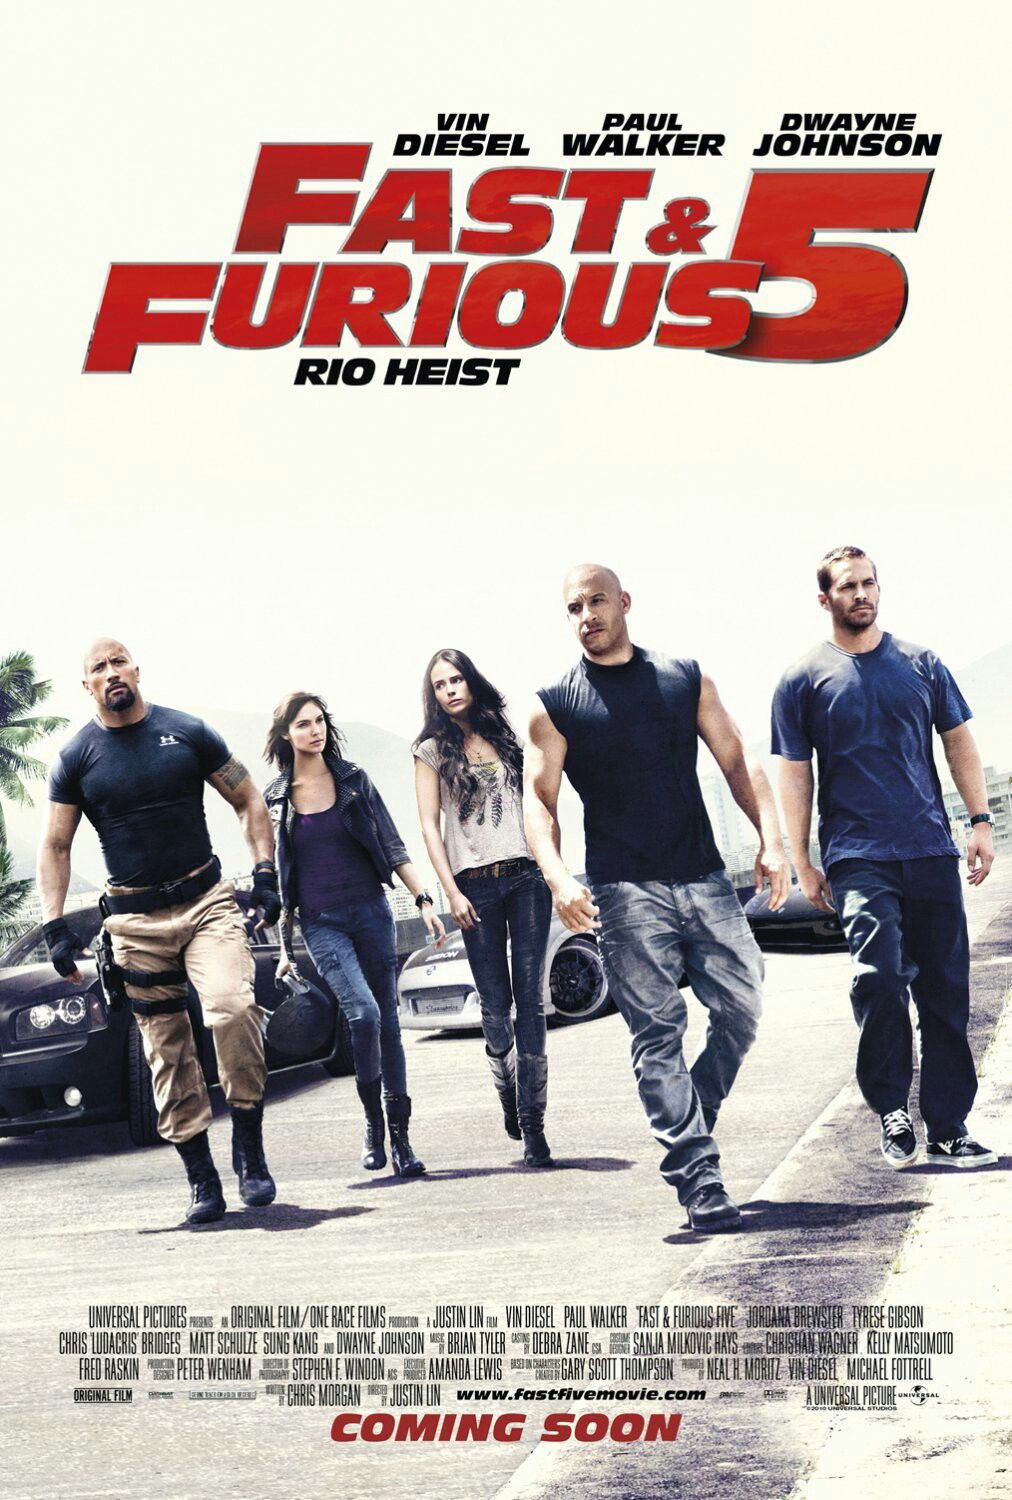 The Fast The Furious 5